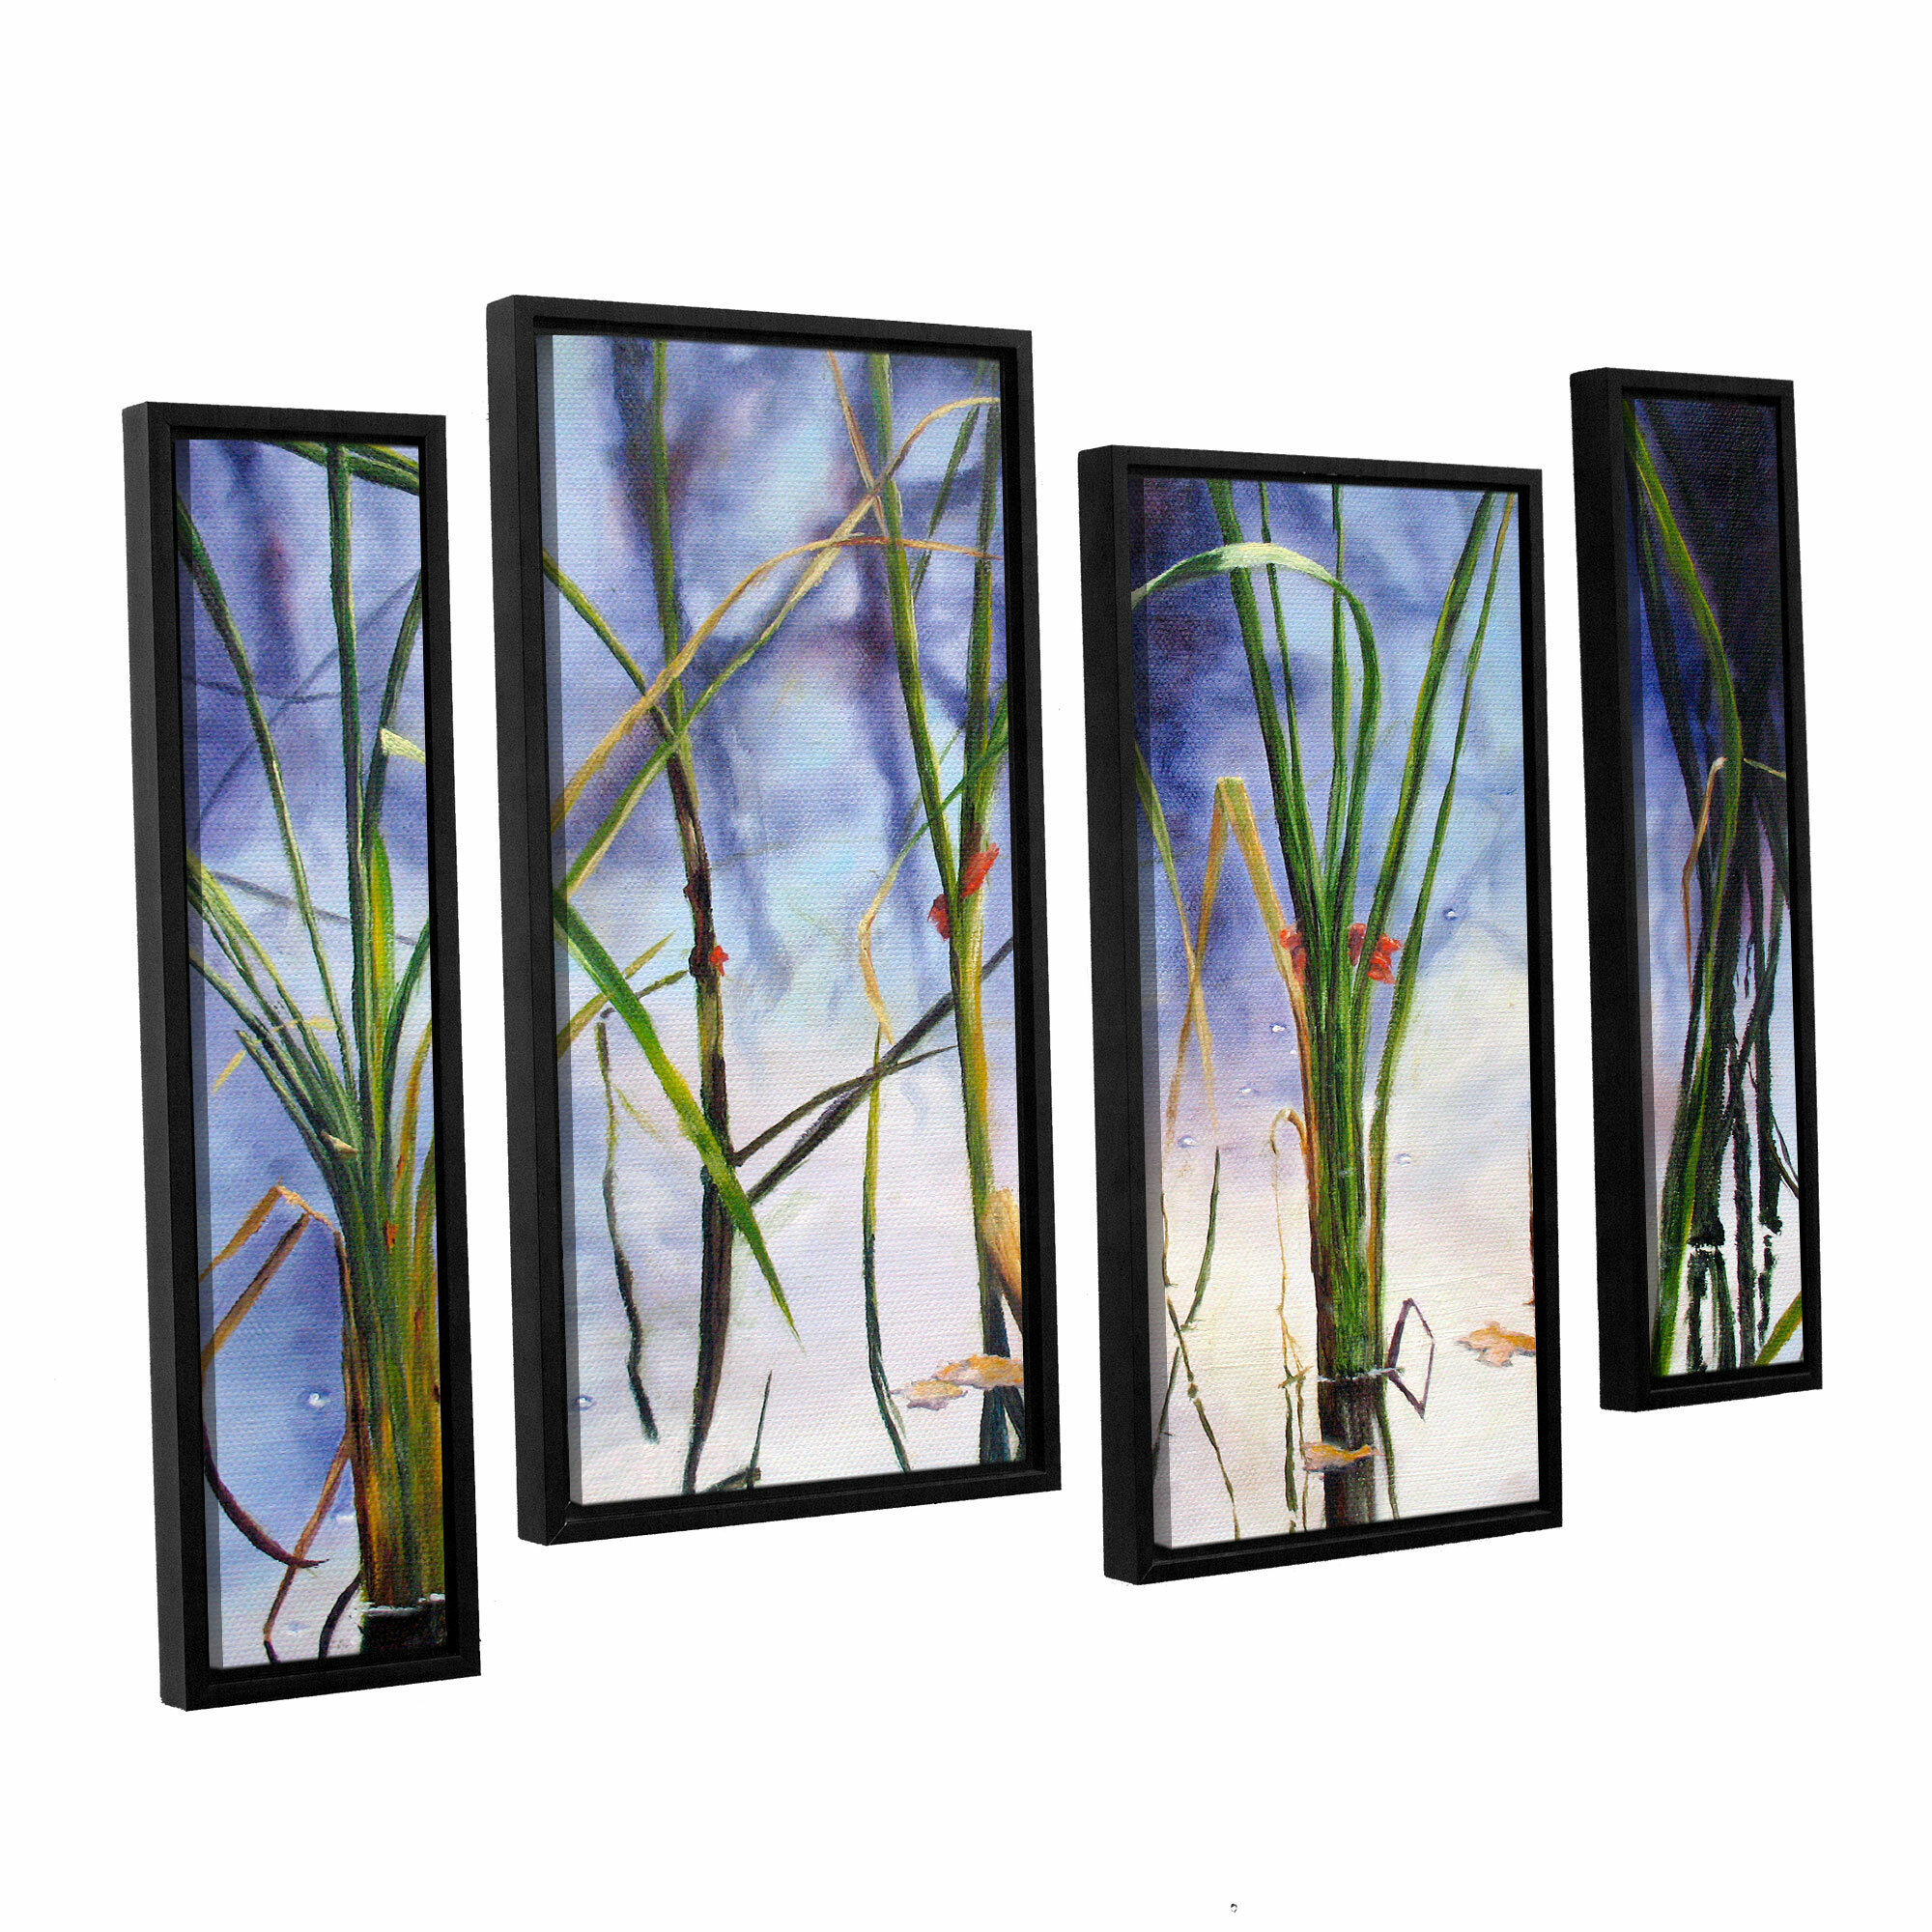 ArtWall Marina Petros Mystic Pond 4 Piece Gallery-Wrapped Canvas Staggered Set 24 by 36